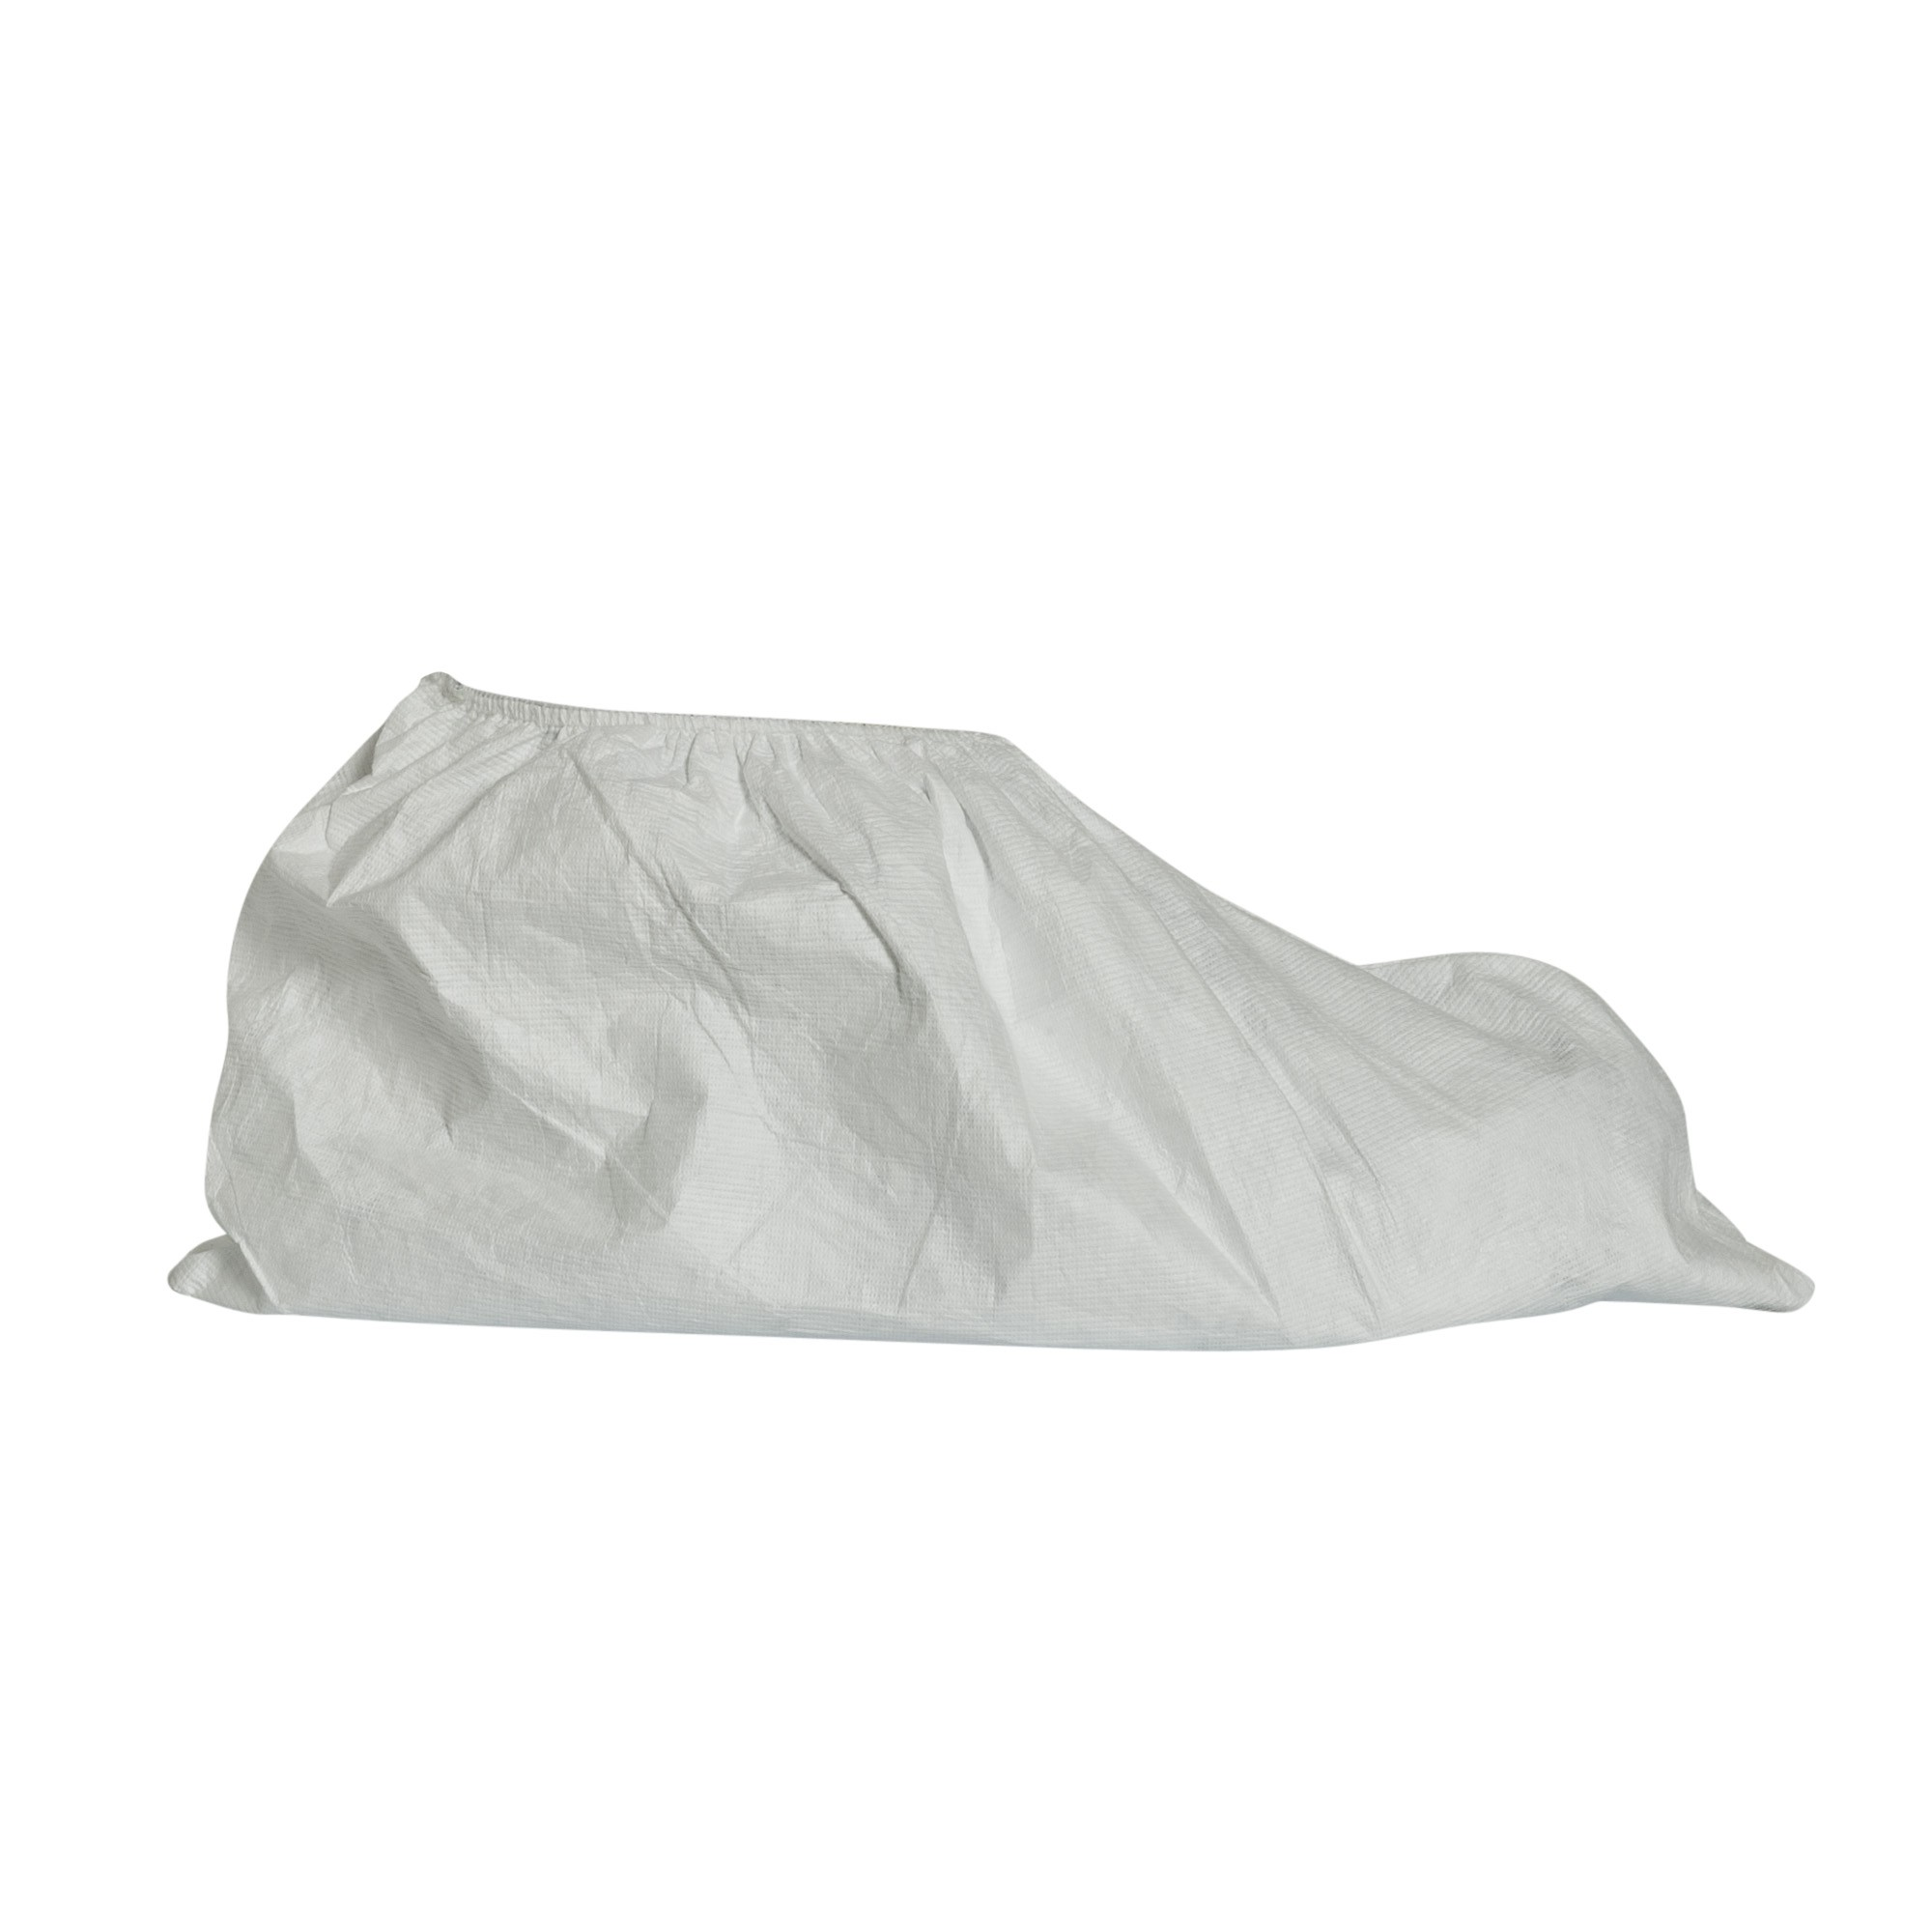 Tyvek® shoe cover